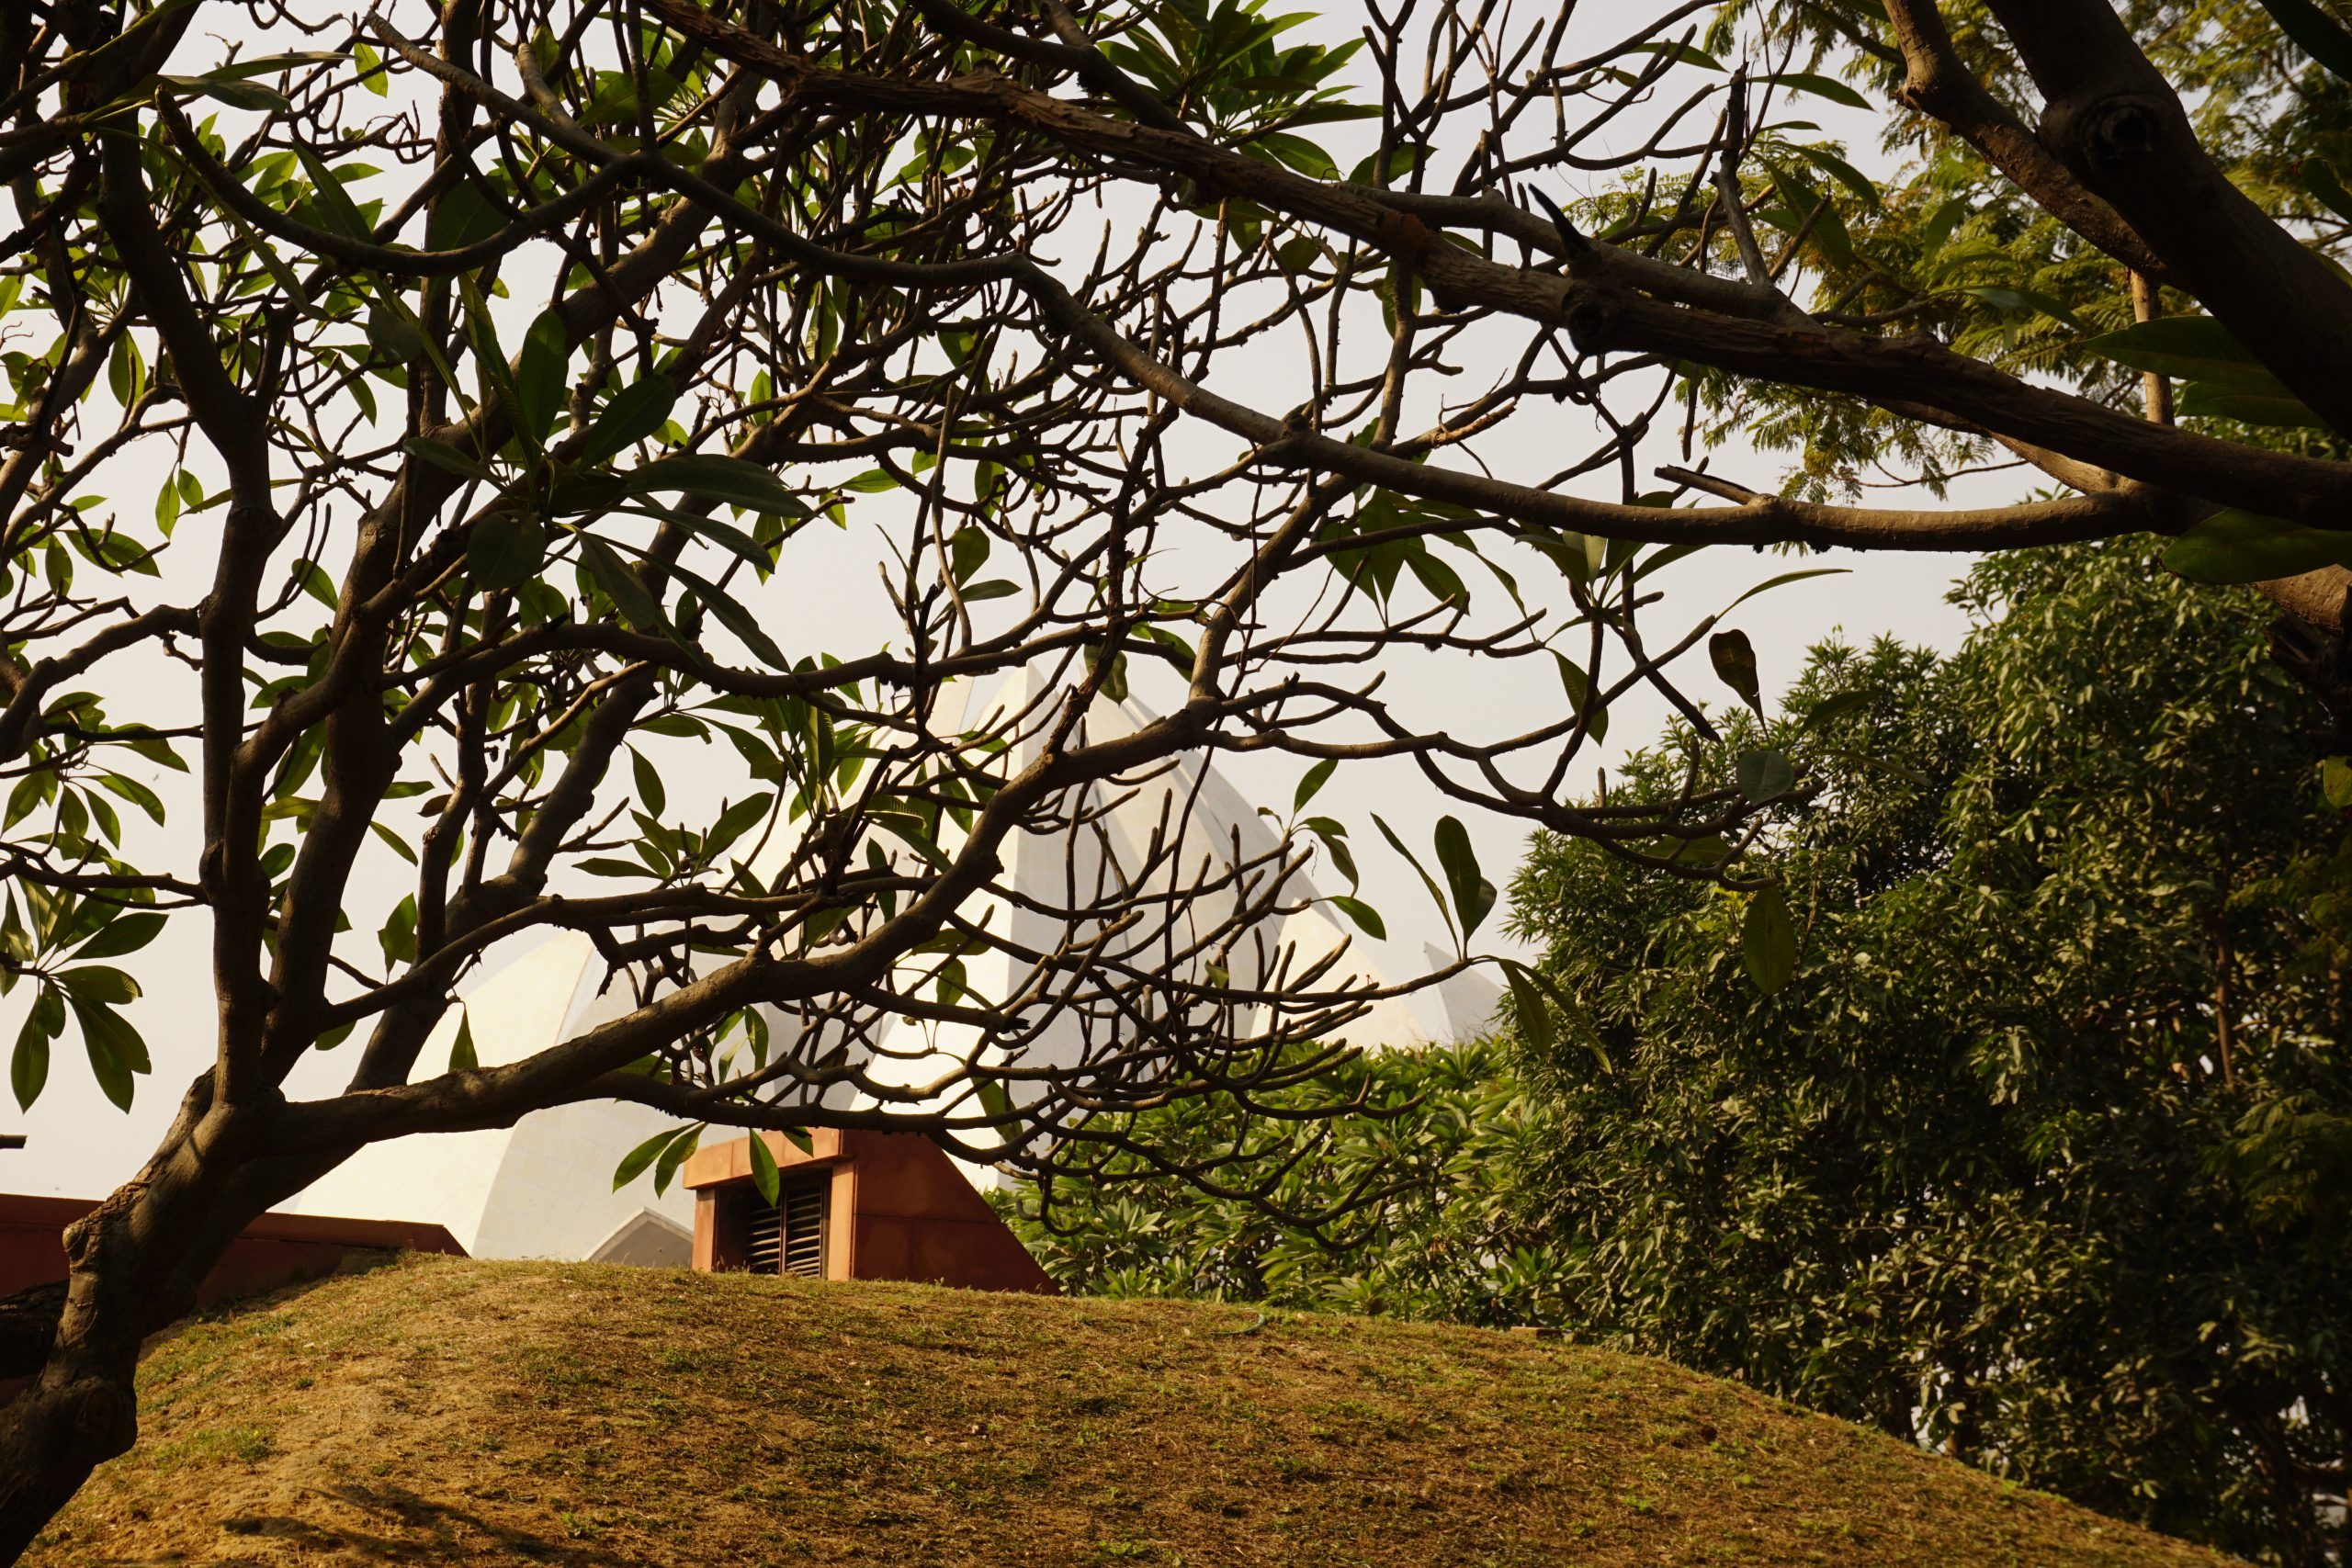 view of lotus temple from behind the tress